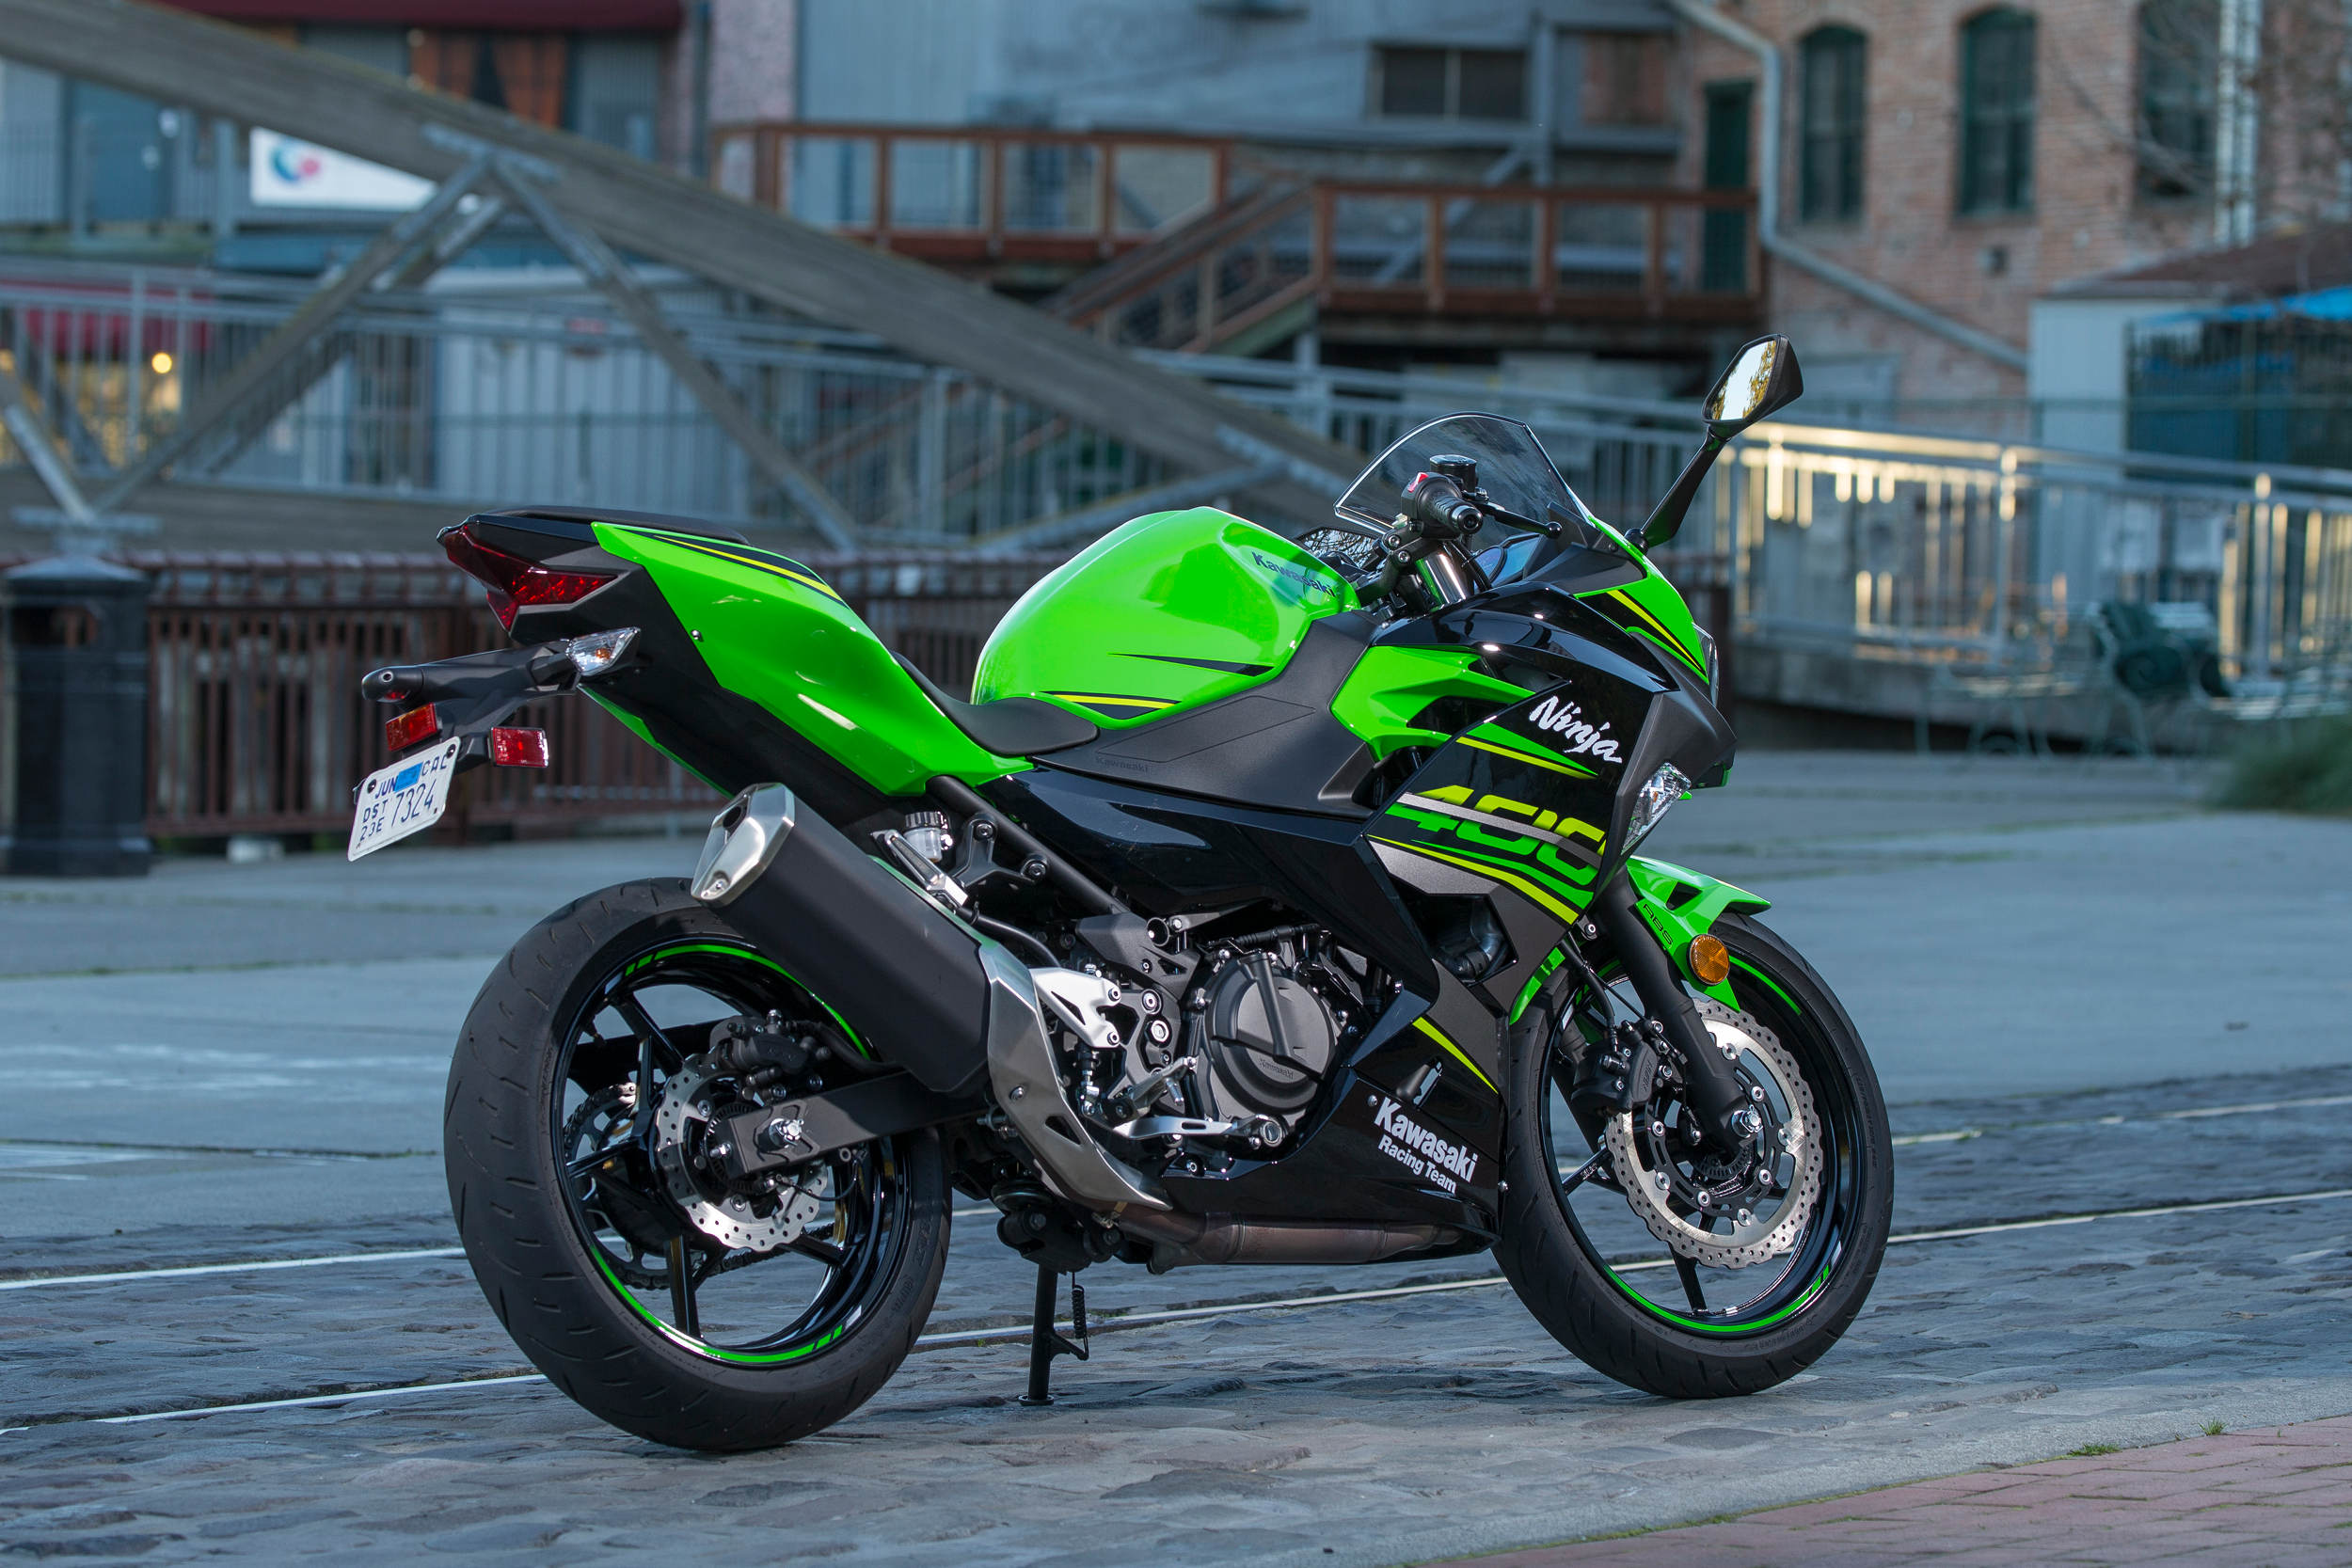 2018 Kawasaki Ninja 400 Abs Md First Ride Motorcycledailycom